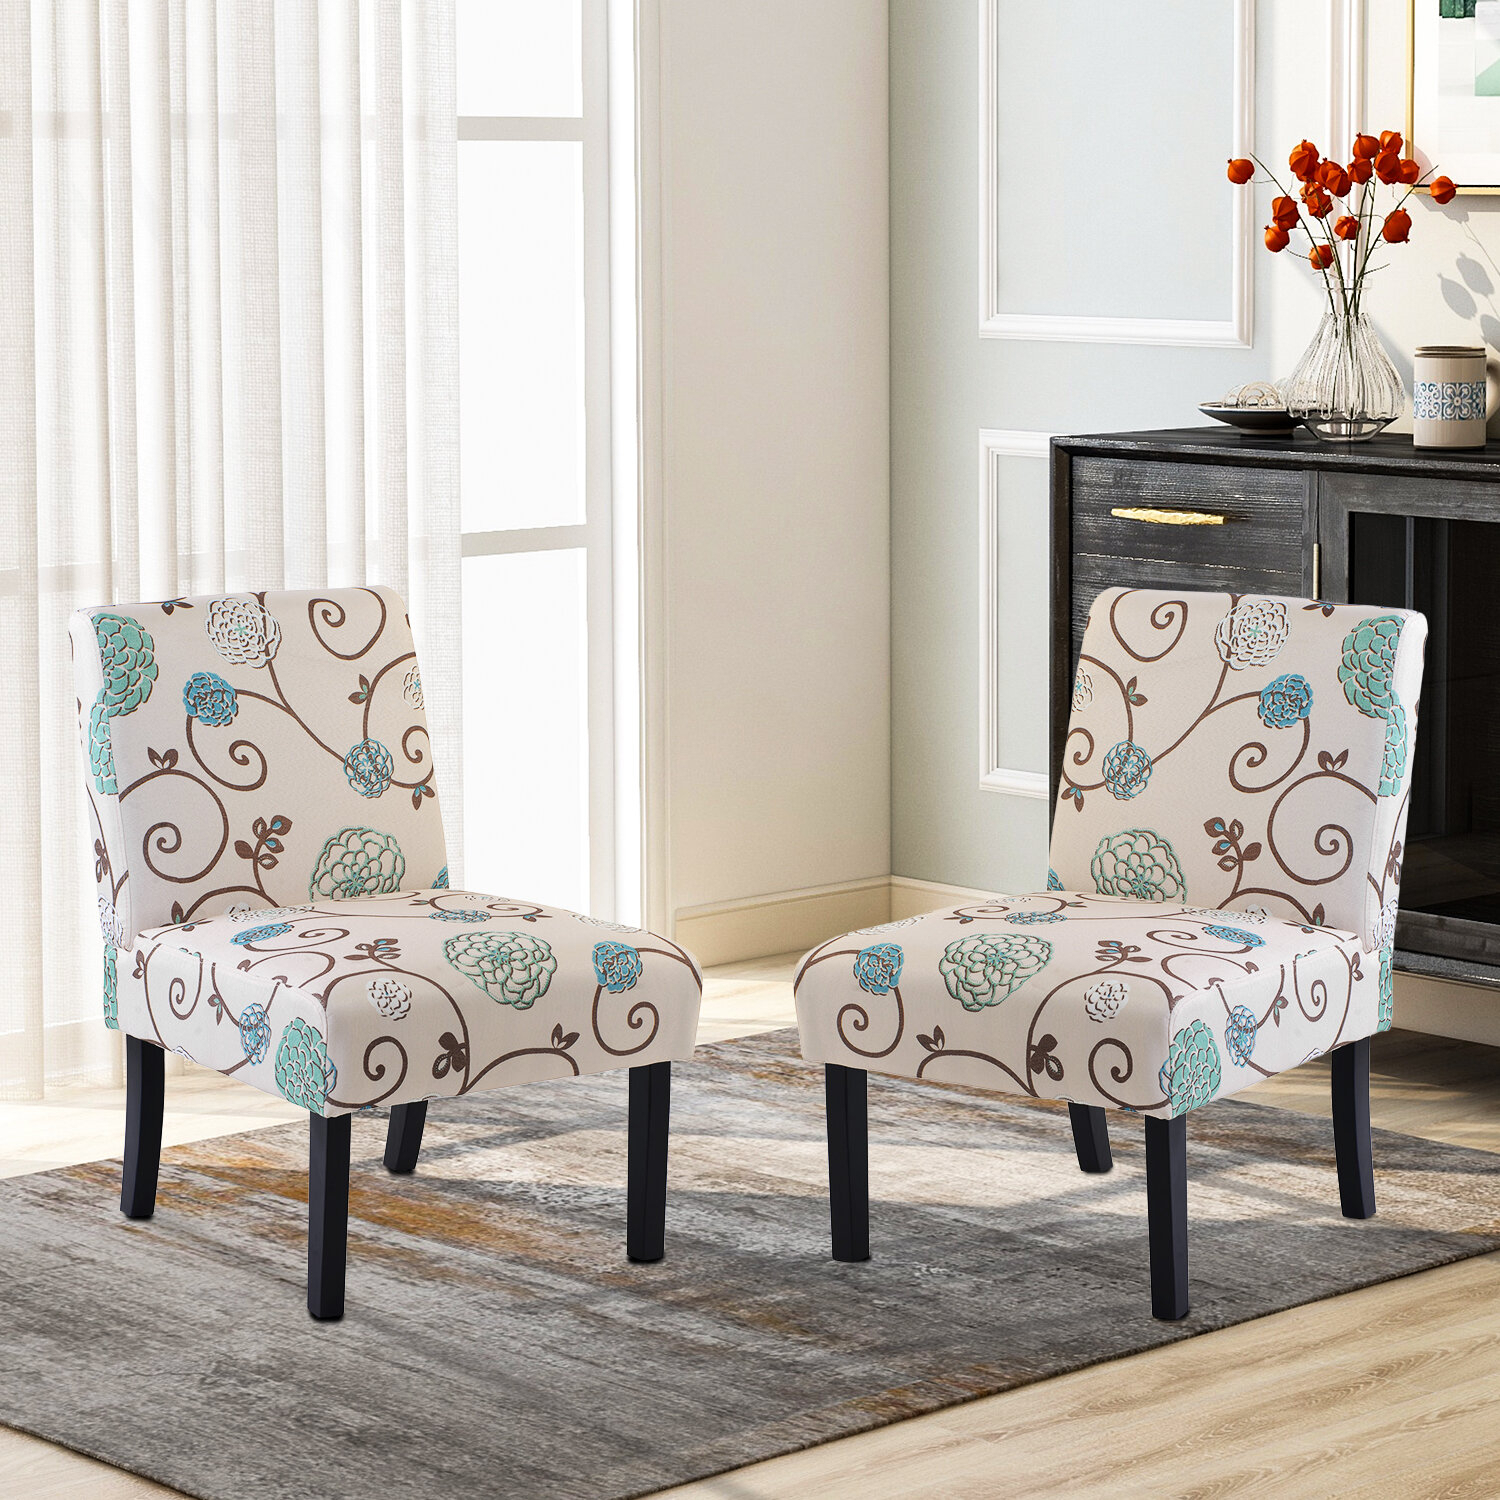 Linen Slipper Accent Chairs You'Ll Love In 2021 | Wayfair With Aalivia Slipper Chairs (View 15 of 15)